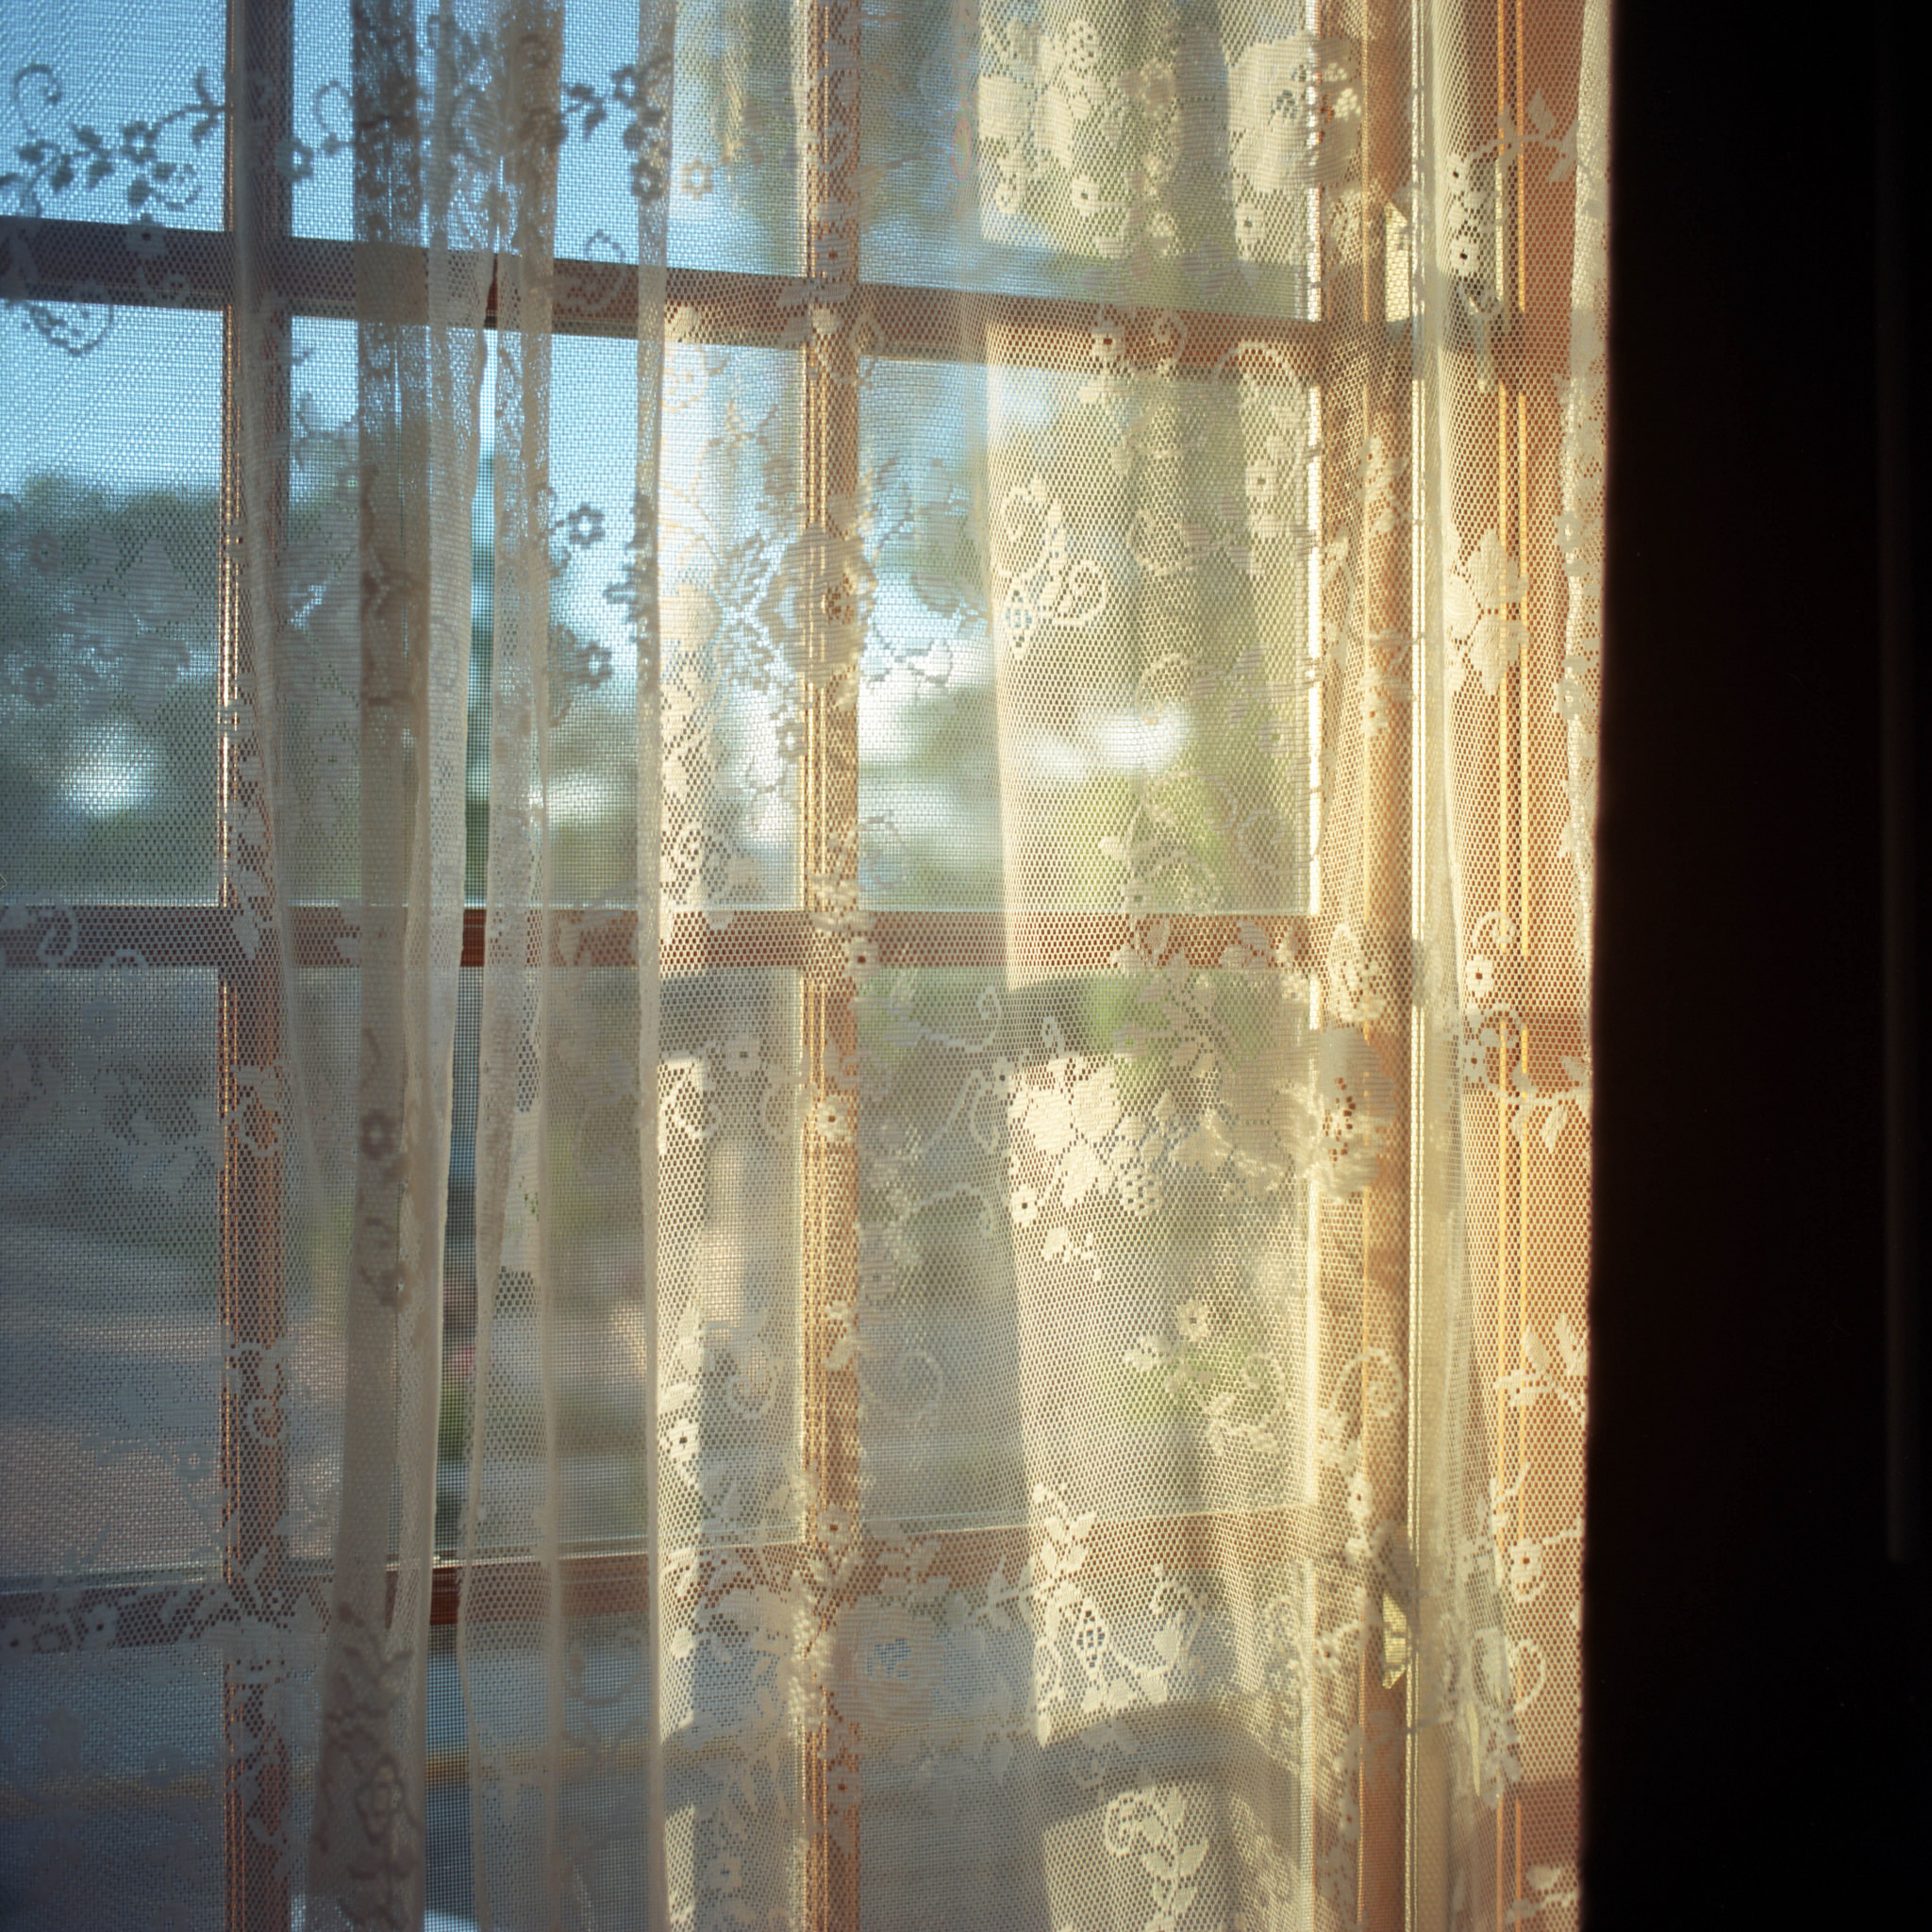 Sunset light coming through the window and curtains...